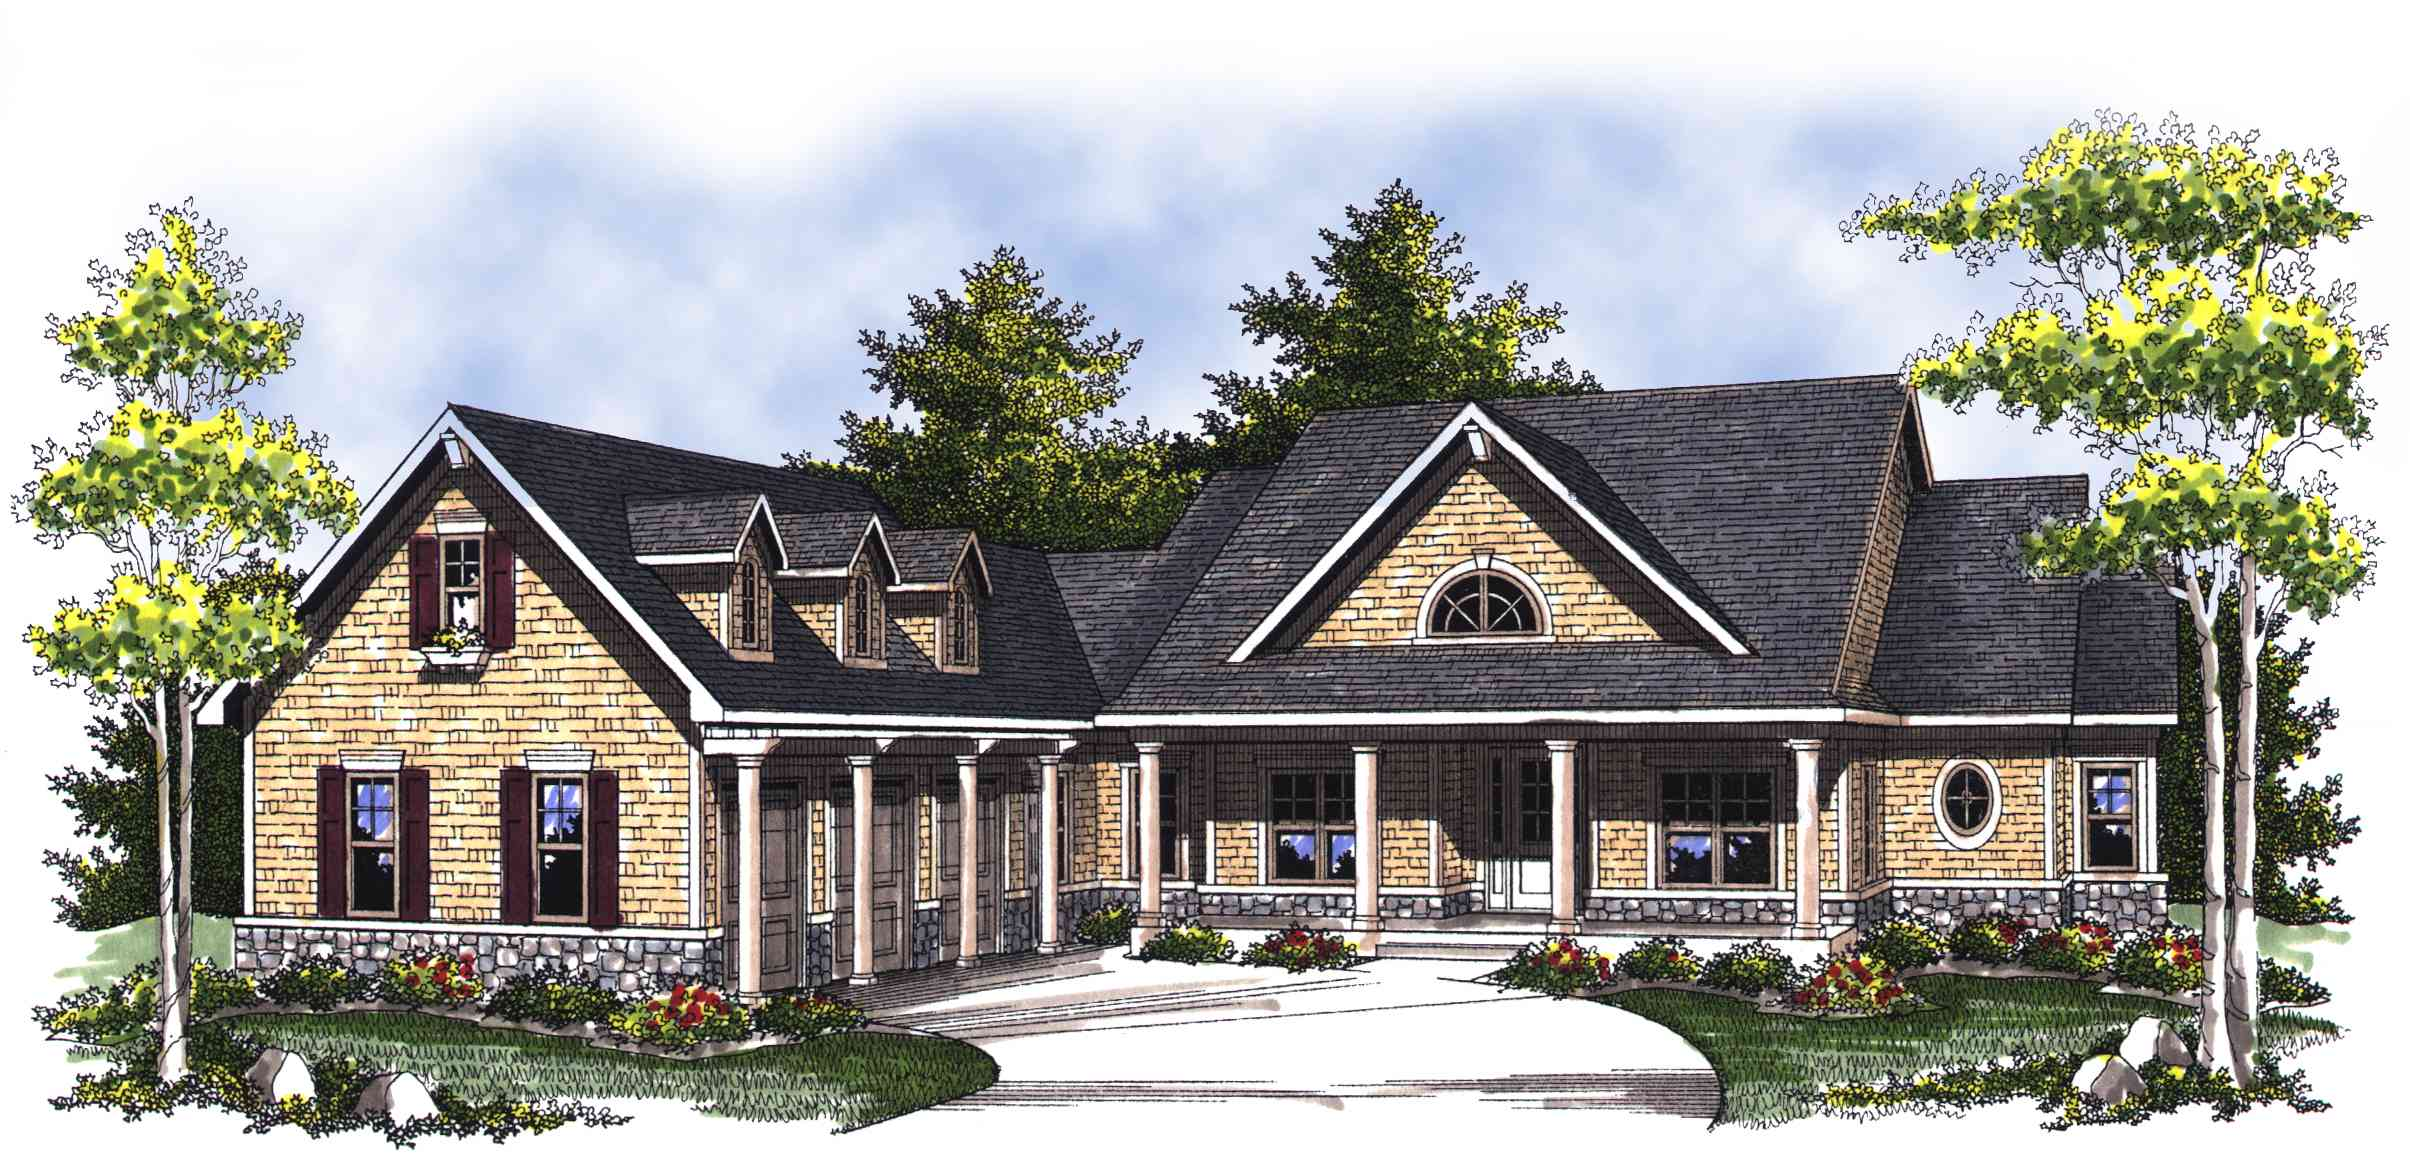 Classic country ranch home plan 89276ah architectural for Long ranch house plans